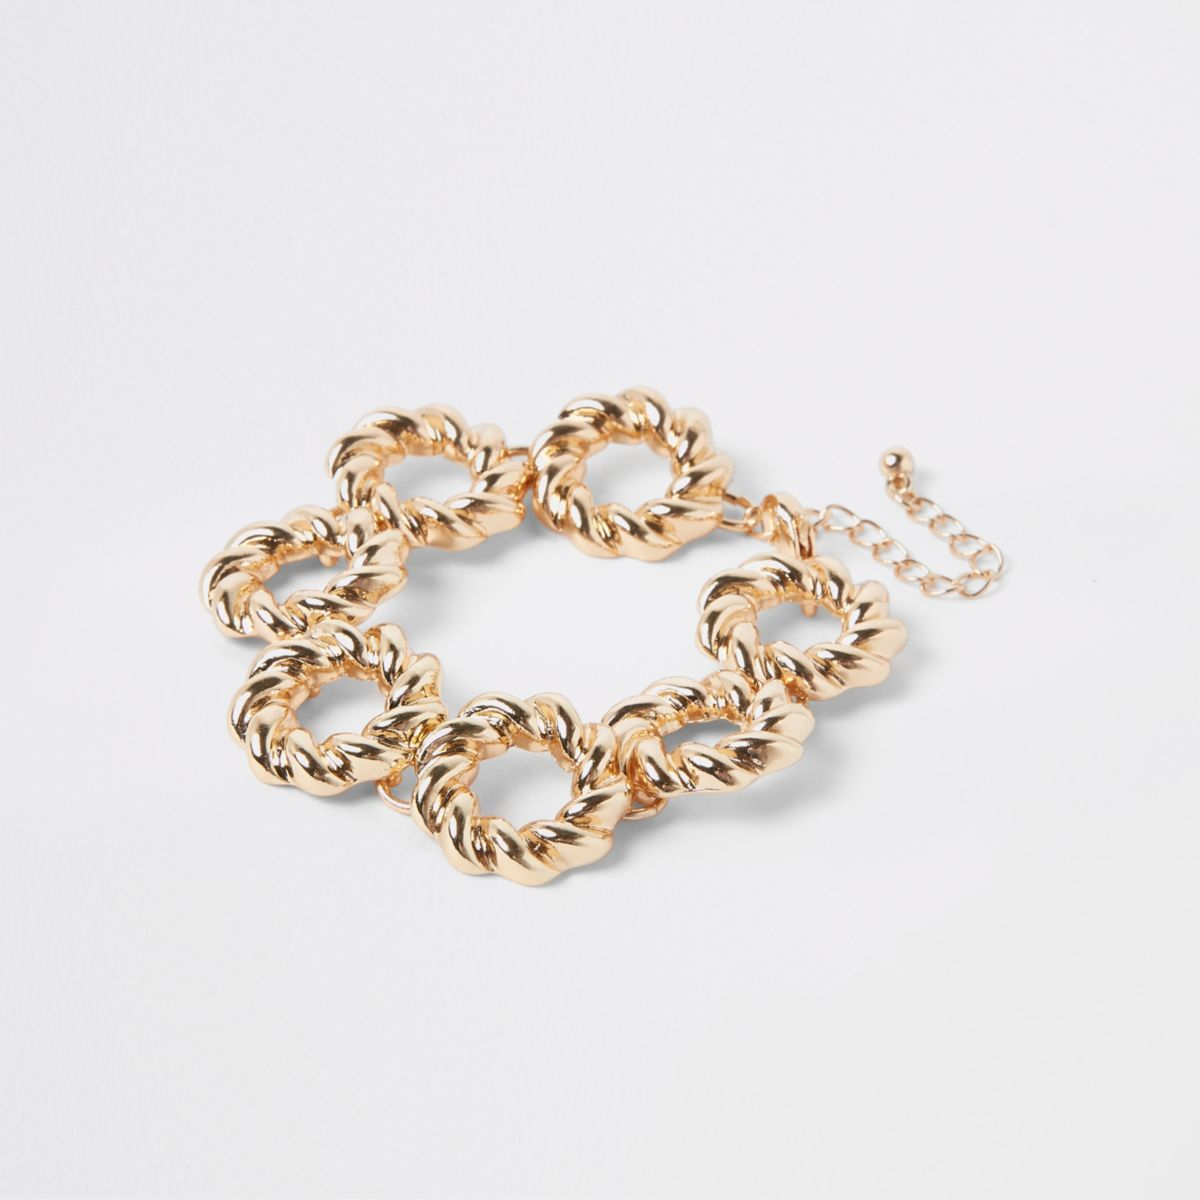 Gold tone twisted ring bracelet